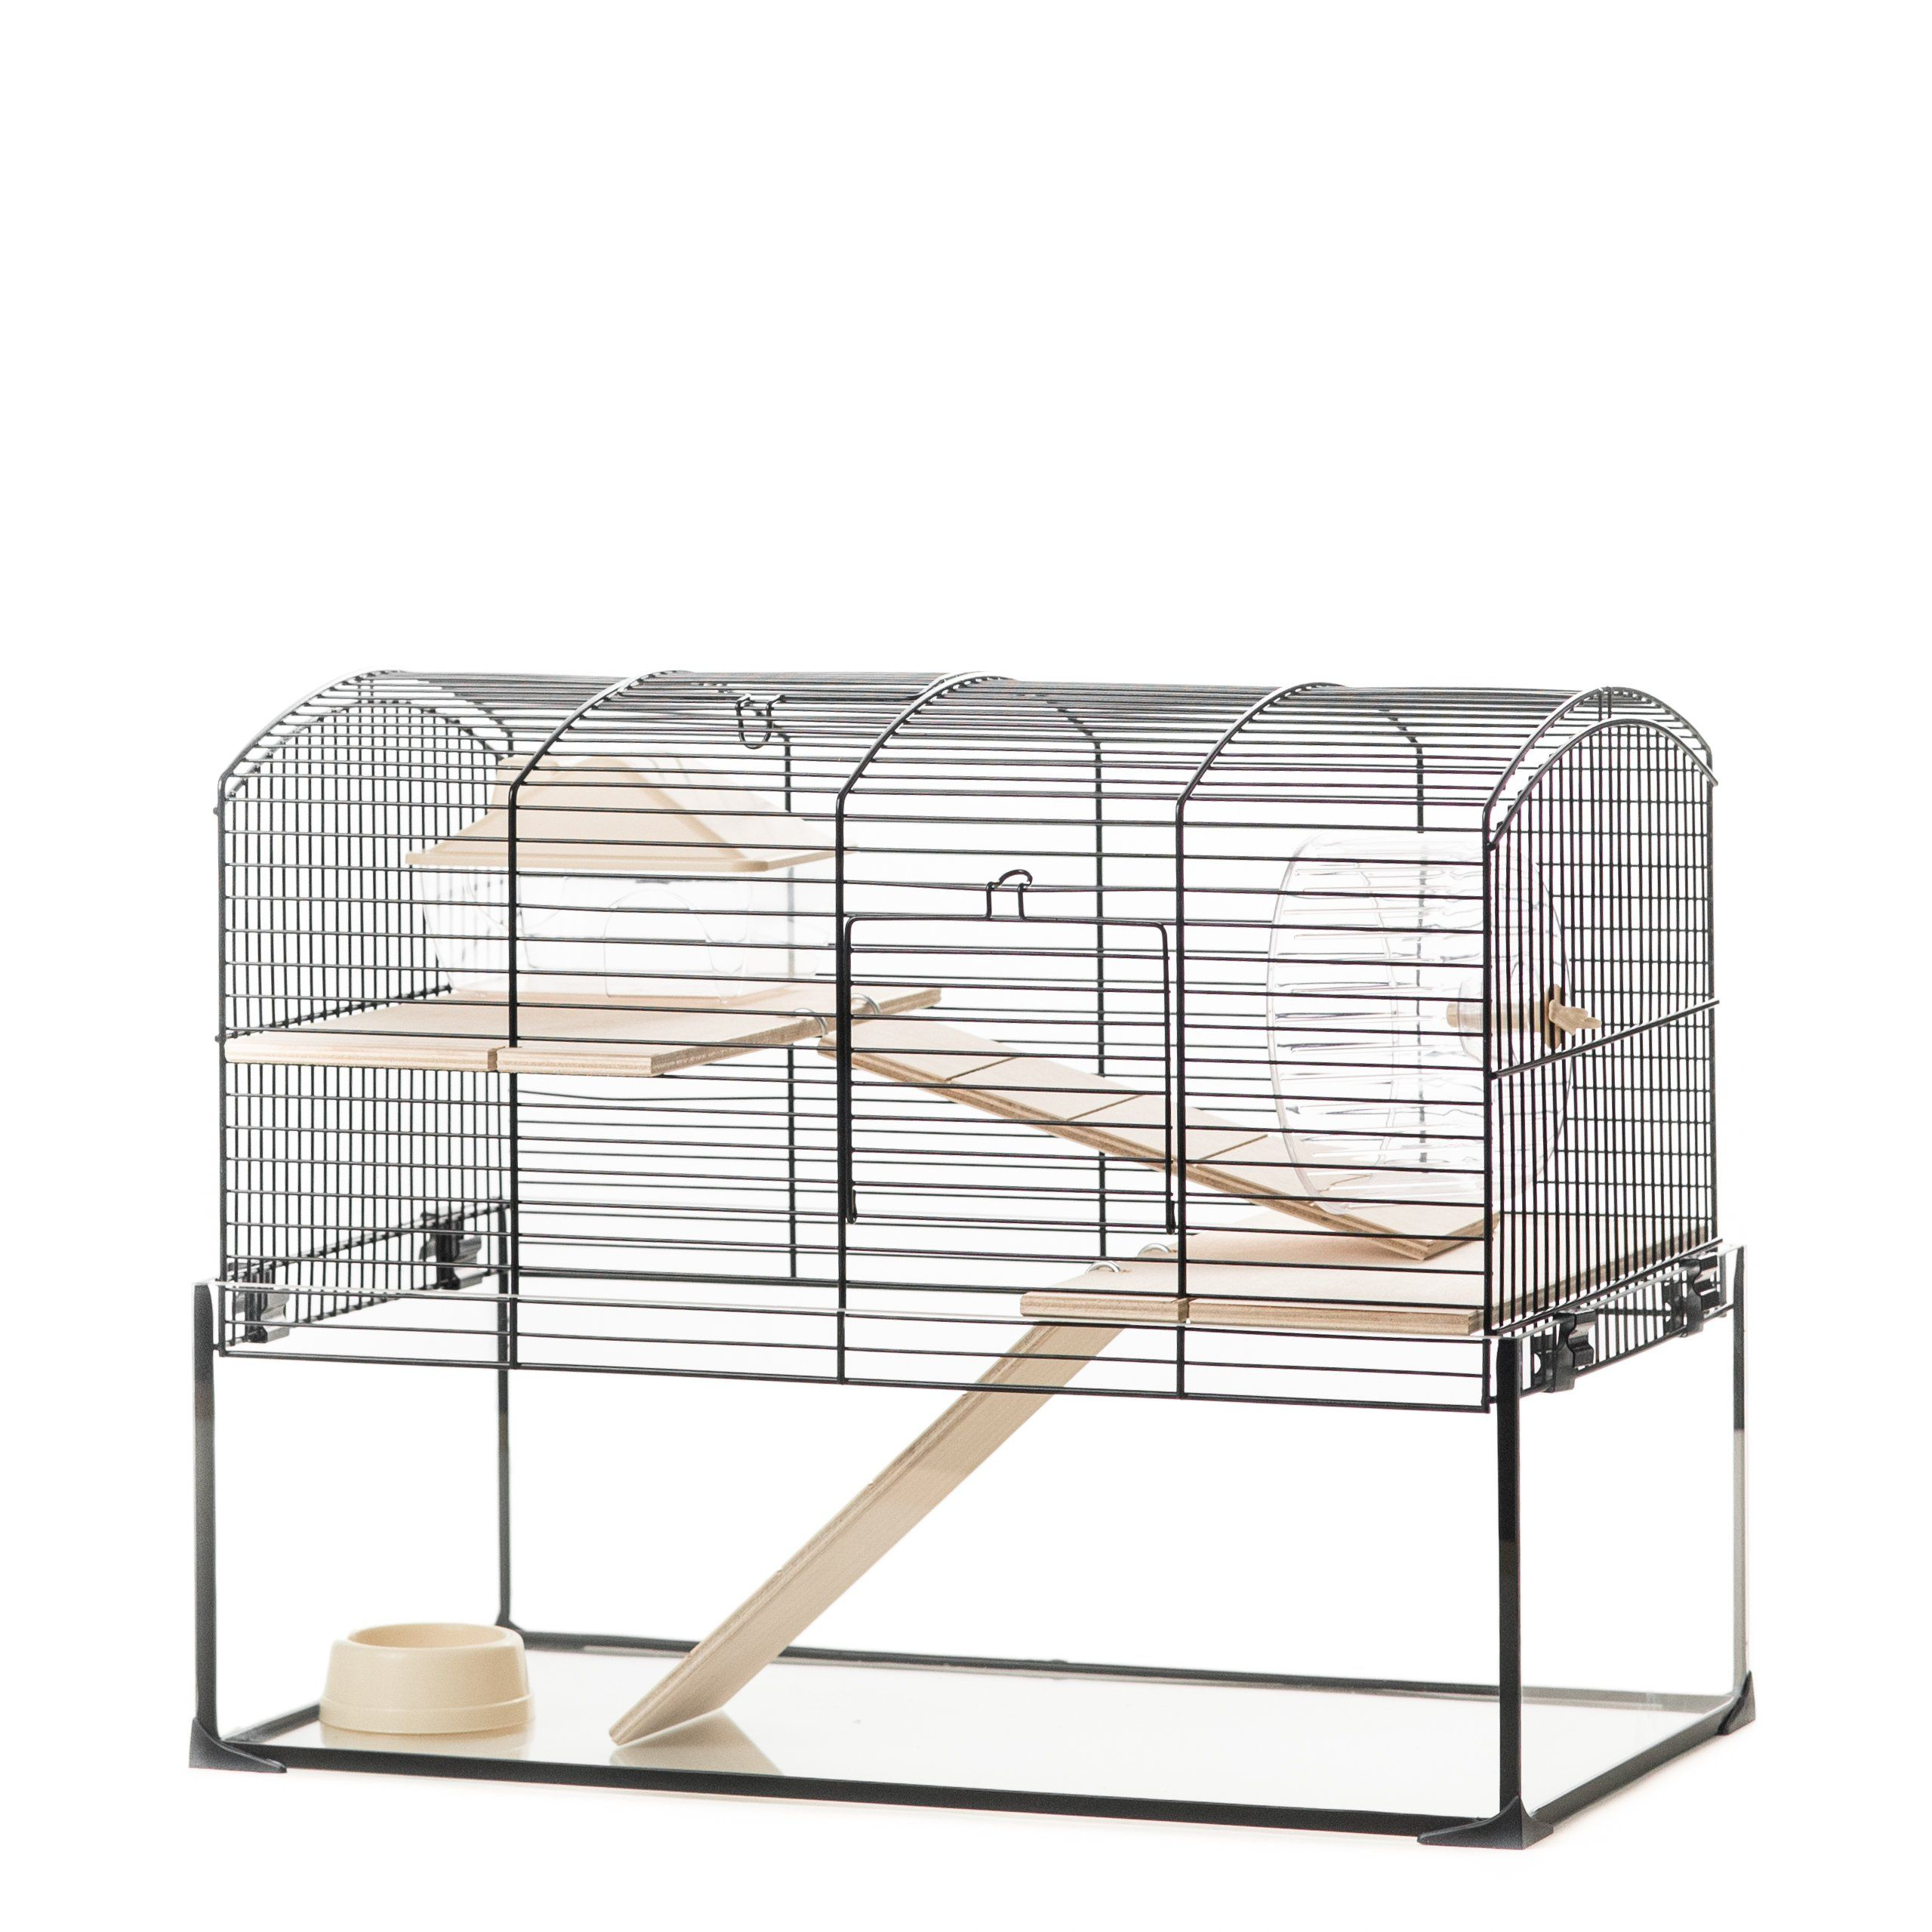 Little Friends Mayfair Gerbilarium Why Isn T Something Like This Sold In The Us Wood Instead Of Plastic And Glass Tha Cat Proofing Cage Syrian Hamster Cages